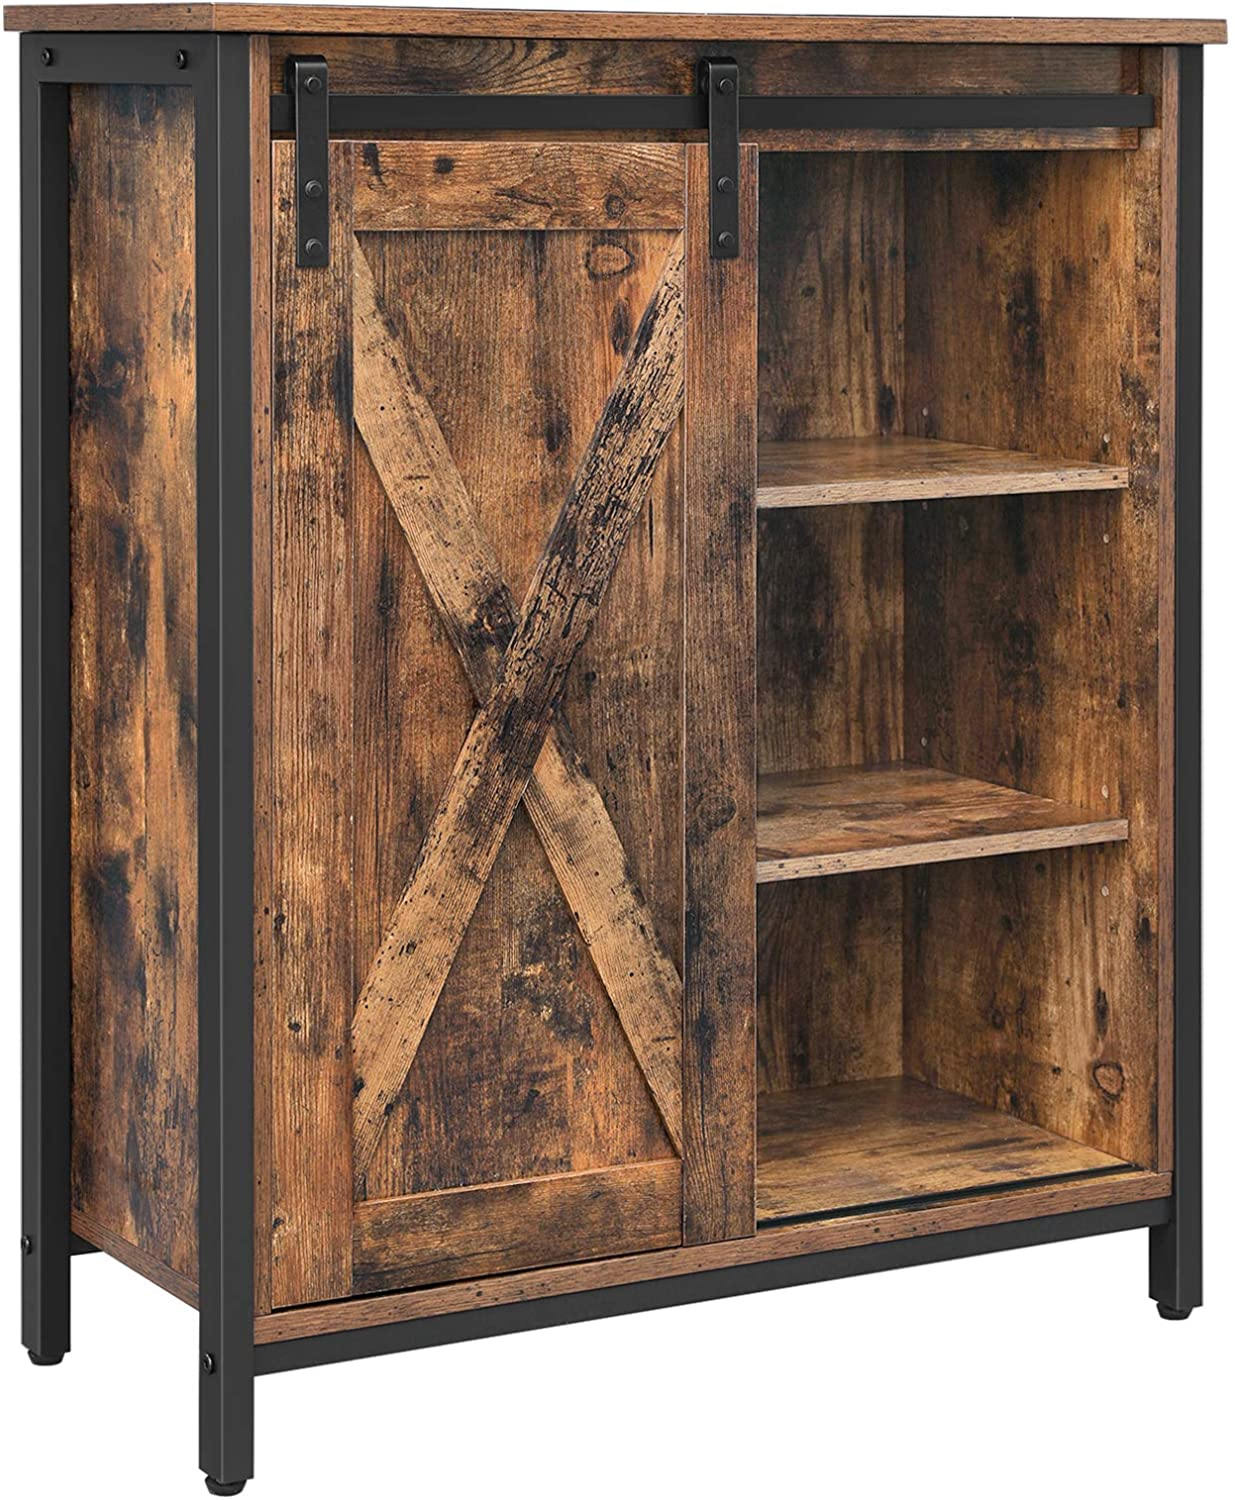 Enjoy fast, free nationwide shipping!  Family owned and operated, HawkinsWoodshop.com is your one stop shop for affordable furniture.  Shop HawkinsWoodshop.com for solid wood & metal modern, traditional, contemporary, industrial, custom, rustic, and farmhouse furniture including our Sliding Door Storage Cabinet with Sideboard.